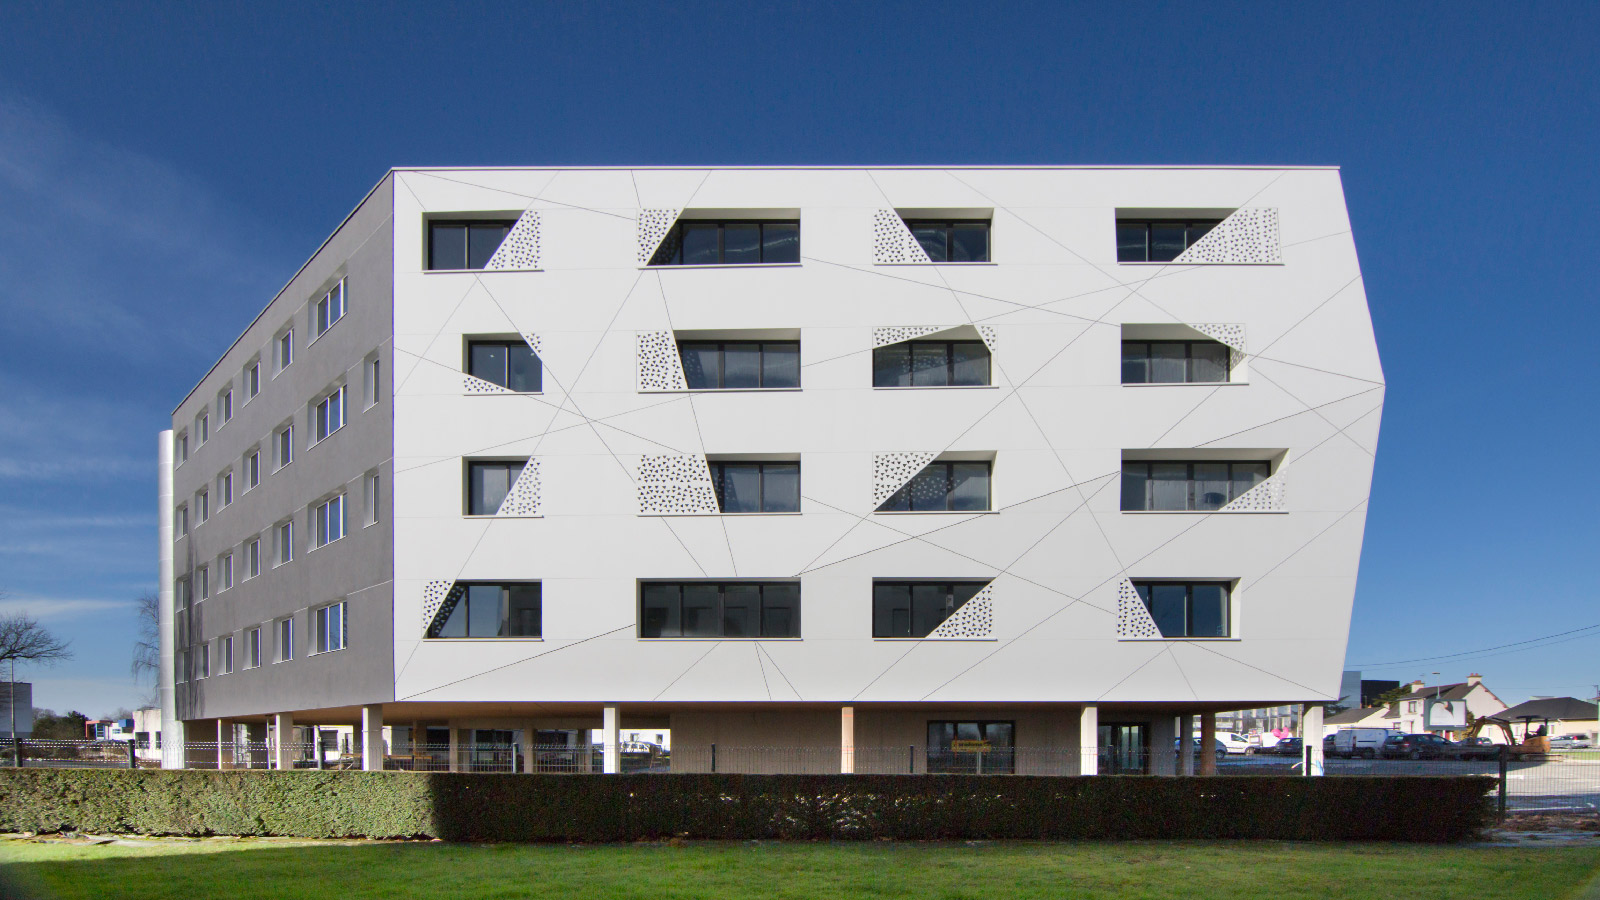 The KRION® facade systems by Butech get the CWCT certificate